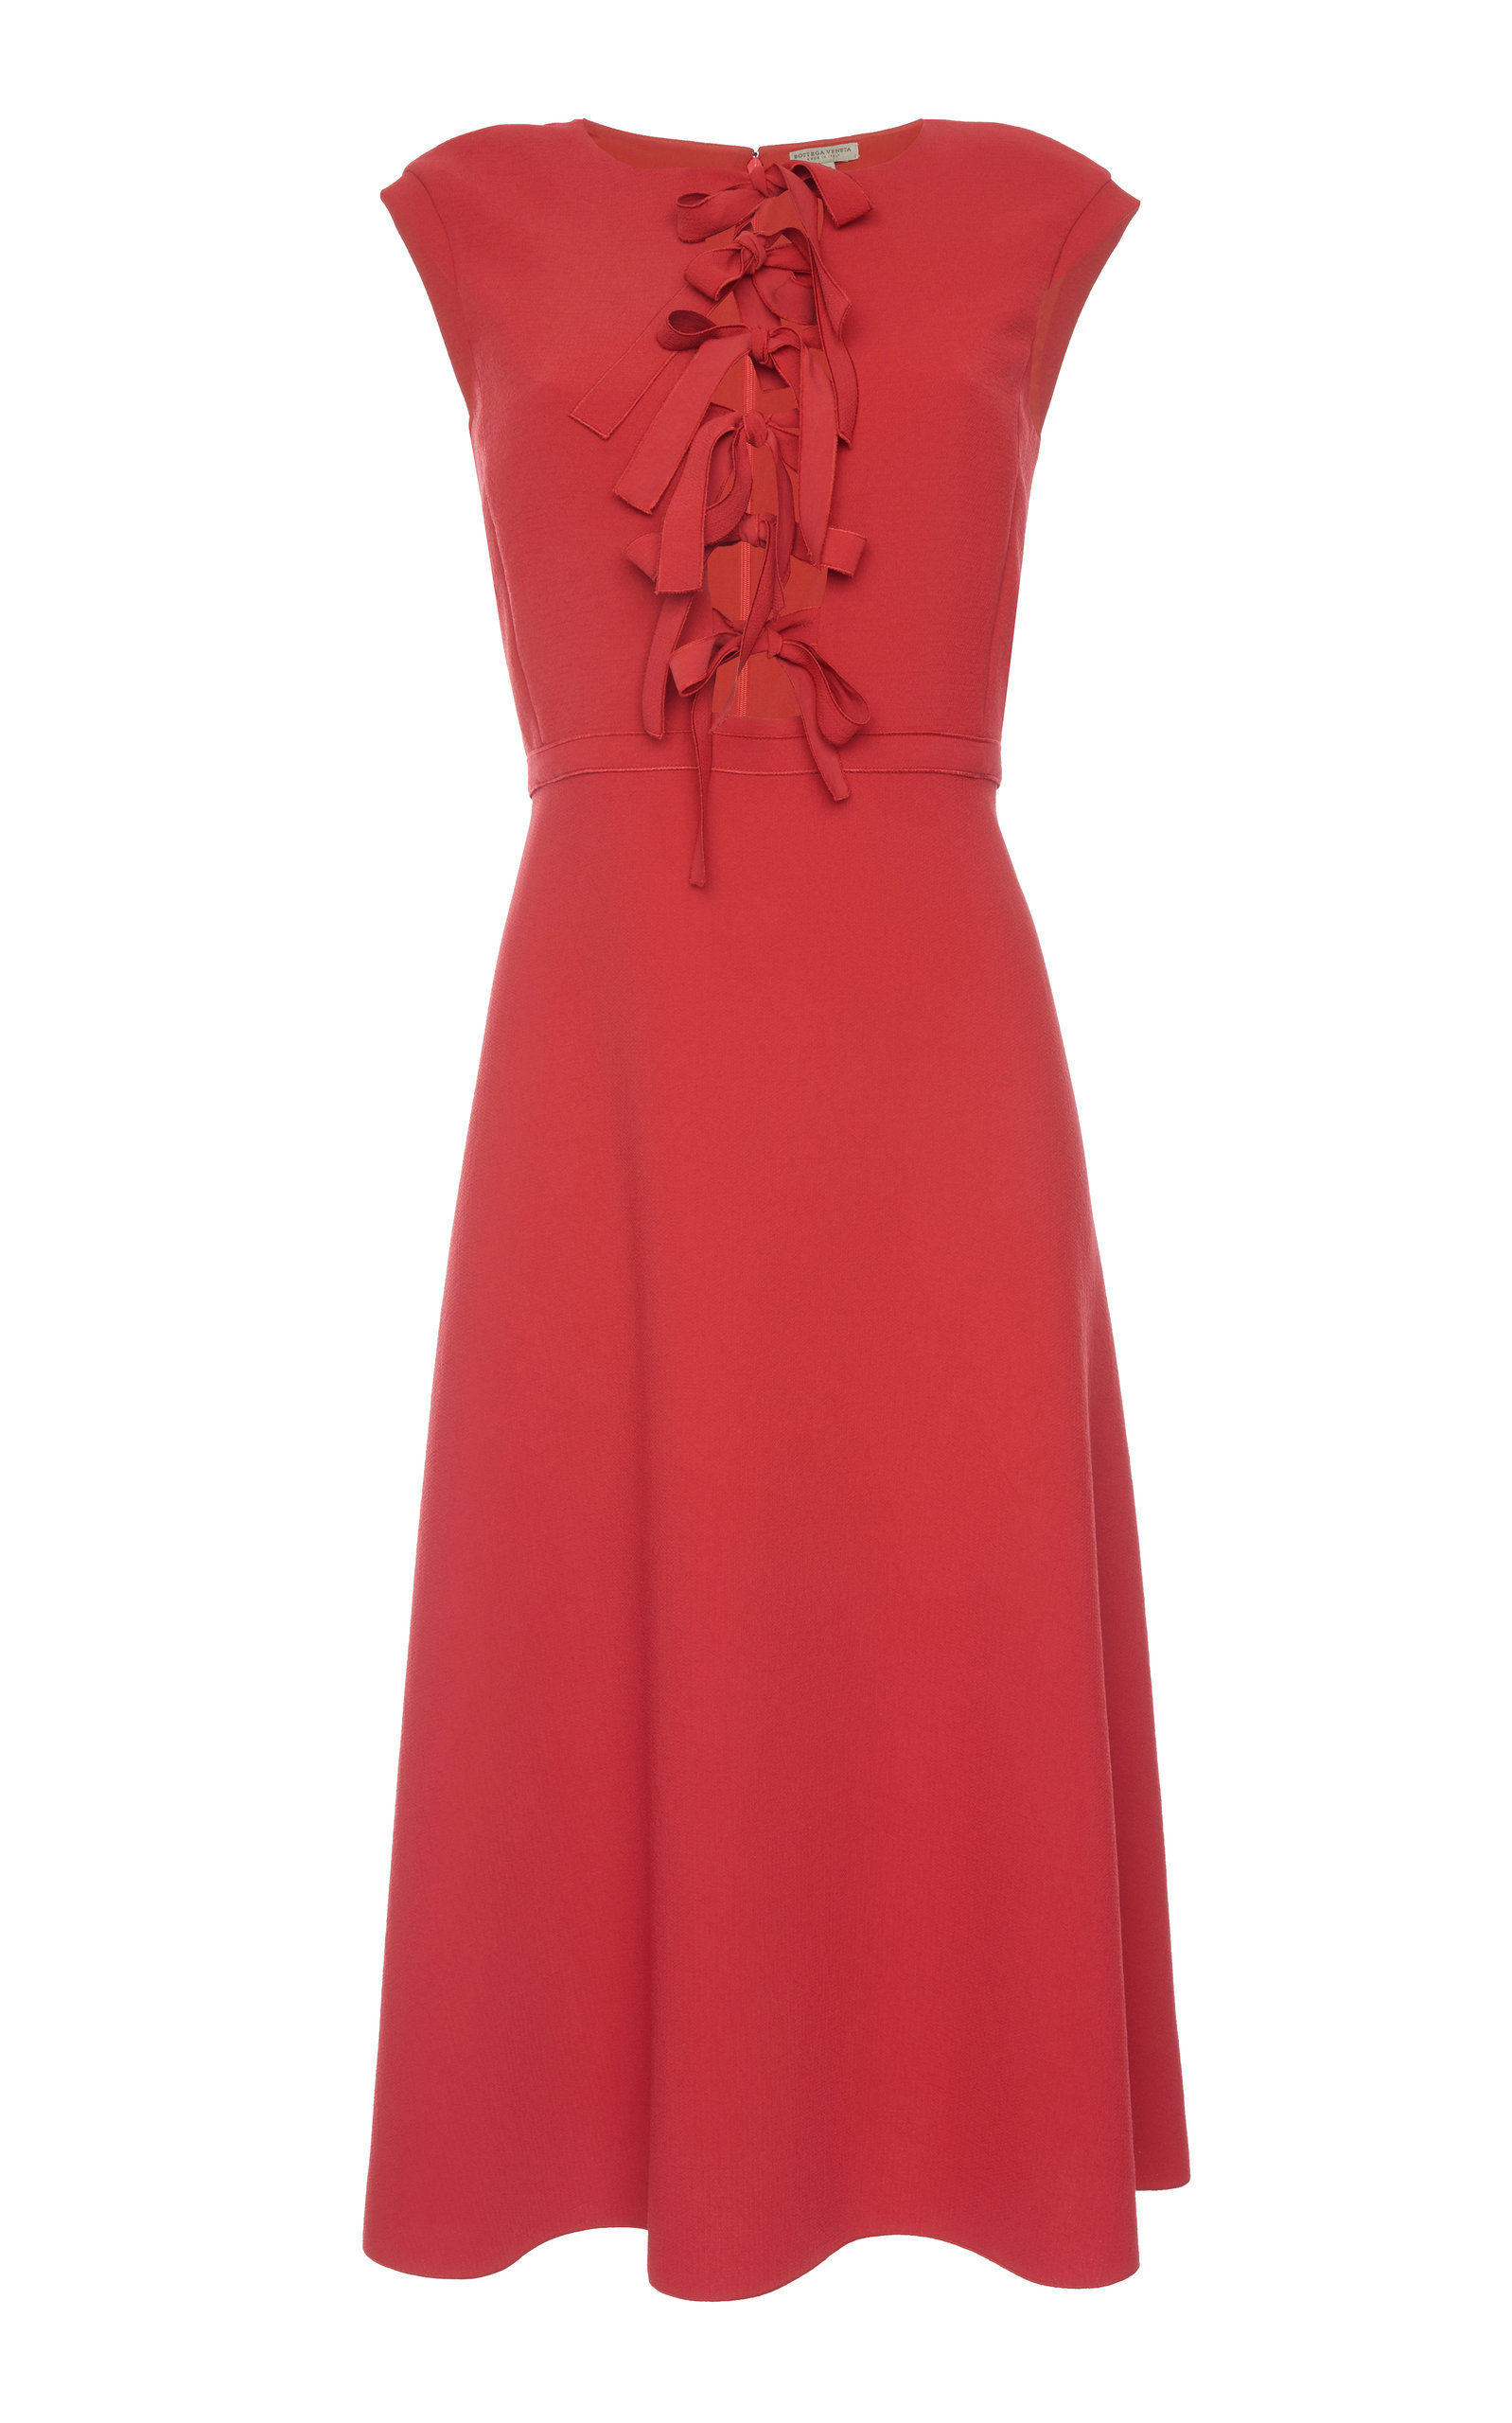 Bow-Front Sleeveless Tea-Length Fit-And-Flare Dress in Red